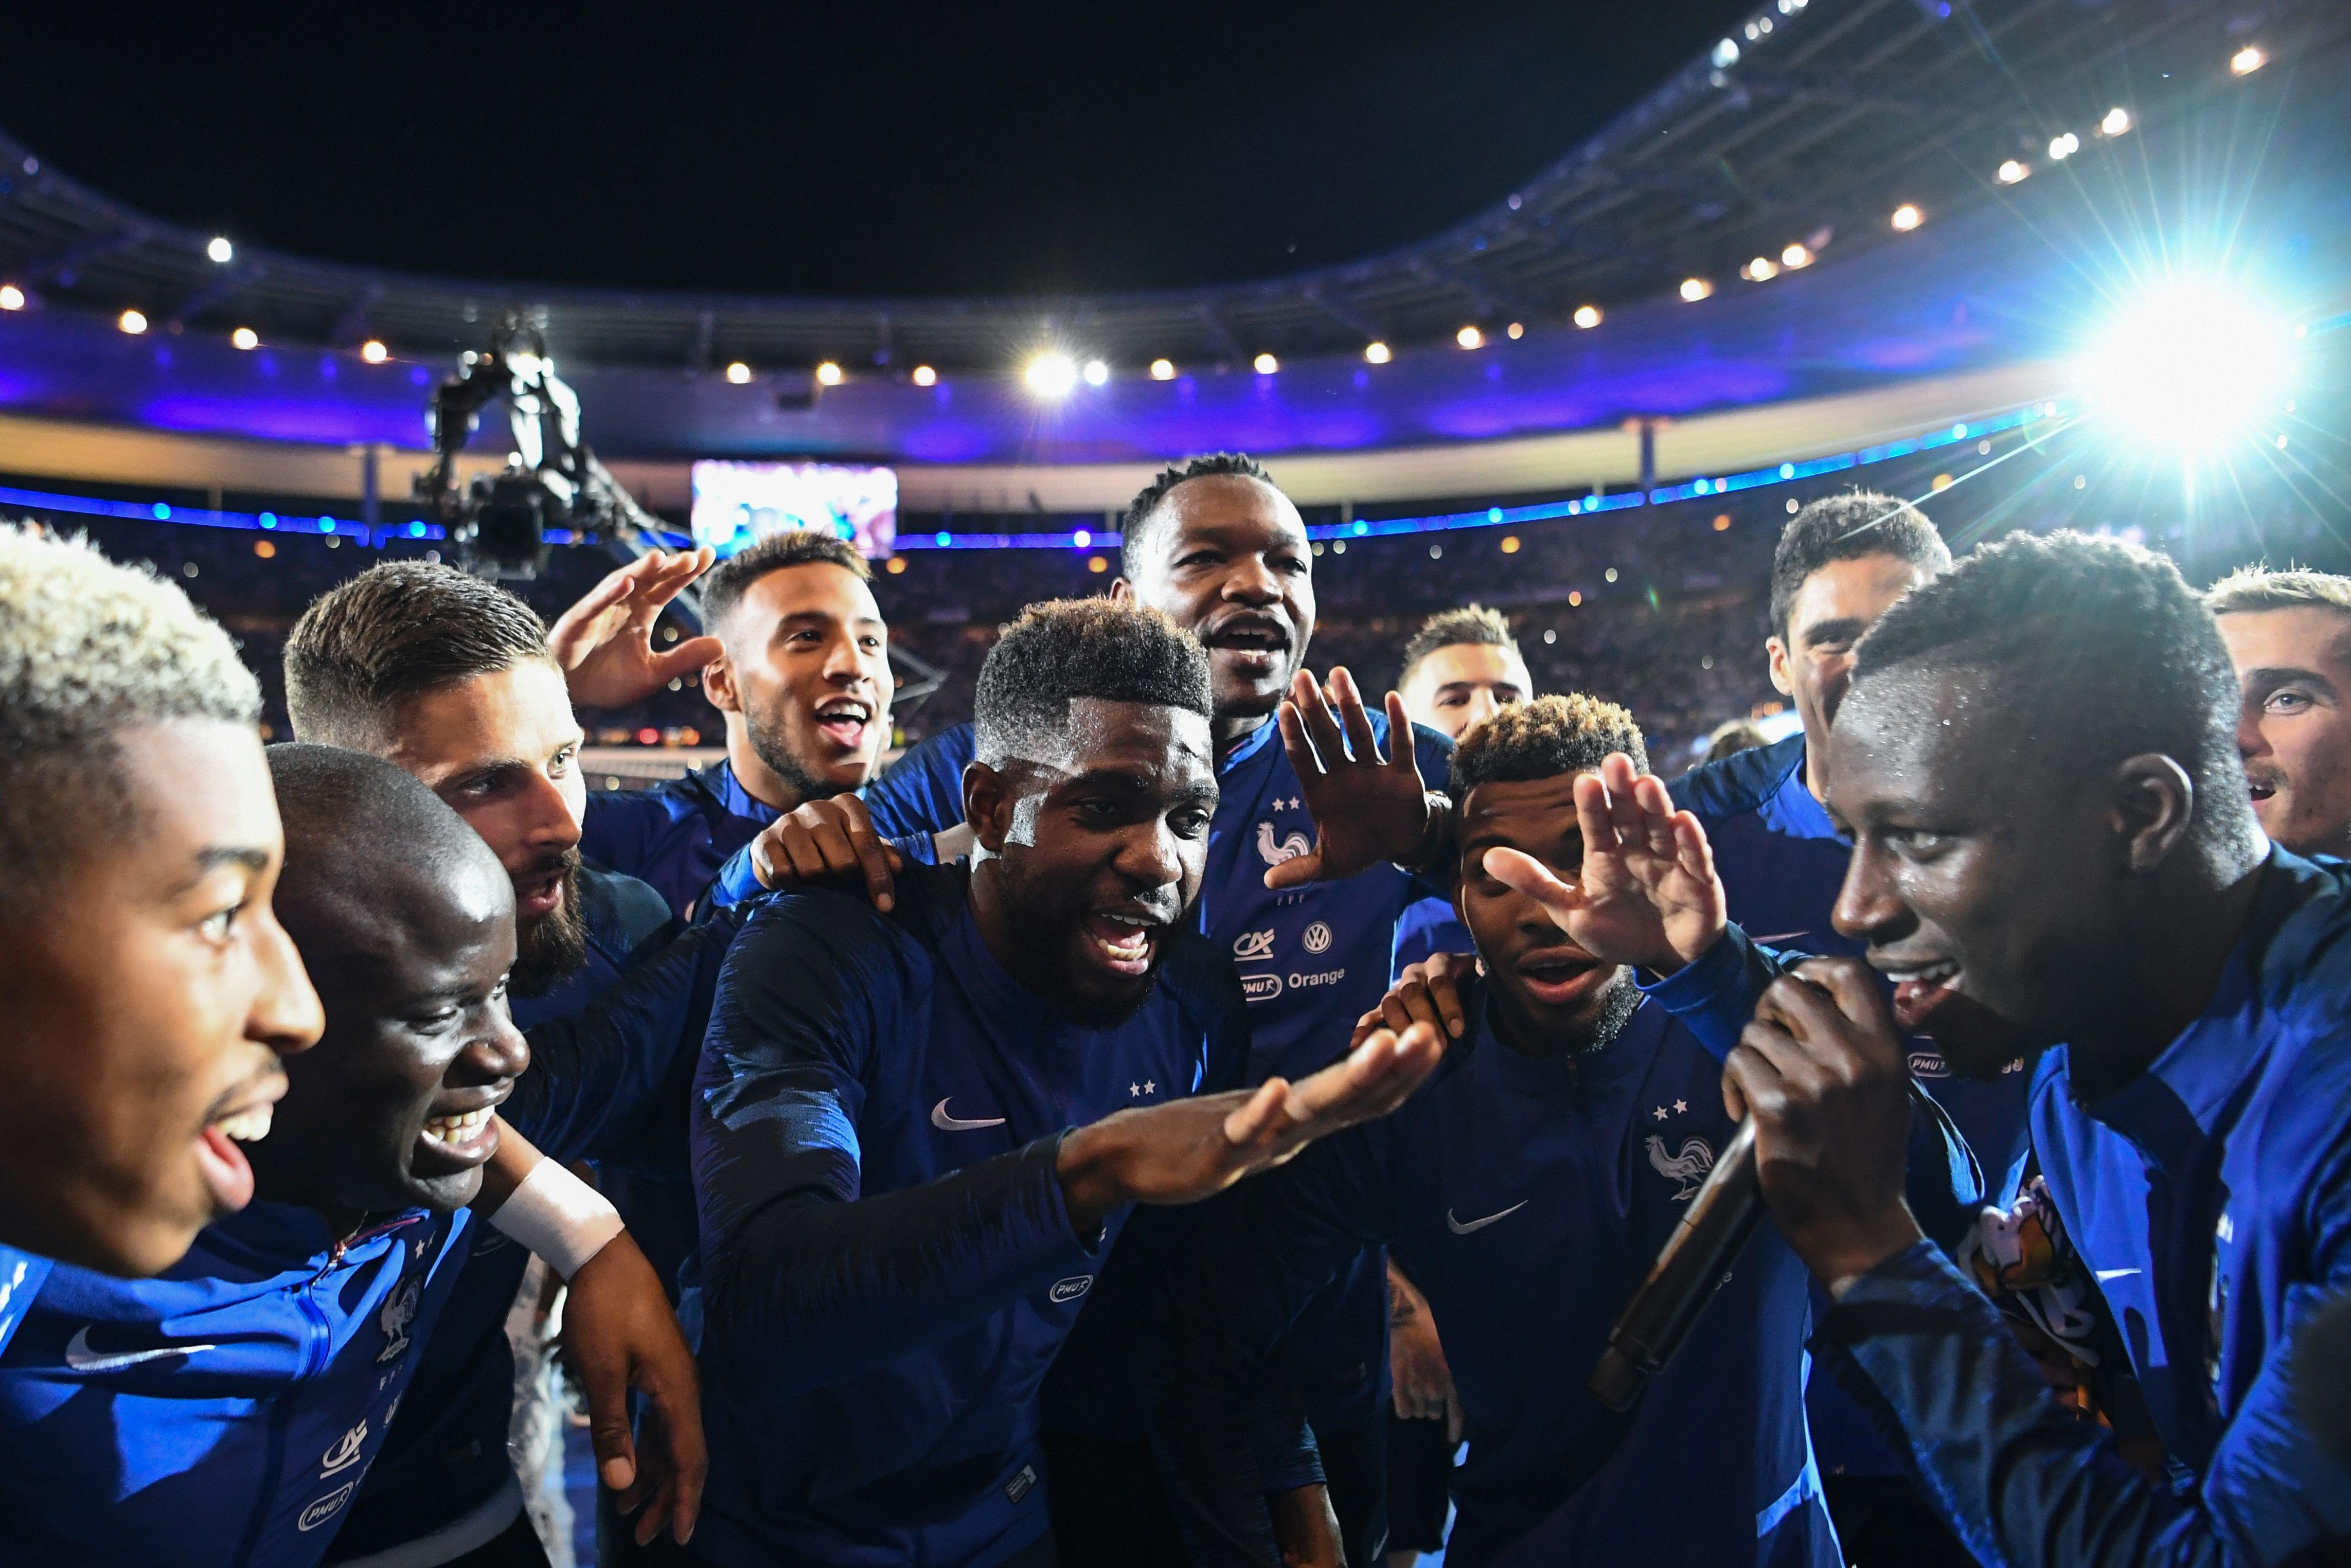 N Golo Kante song with English lyrics as France players and fans     SONG LYRICS IN ENGLISH